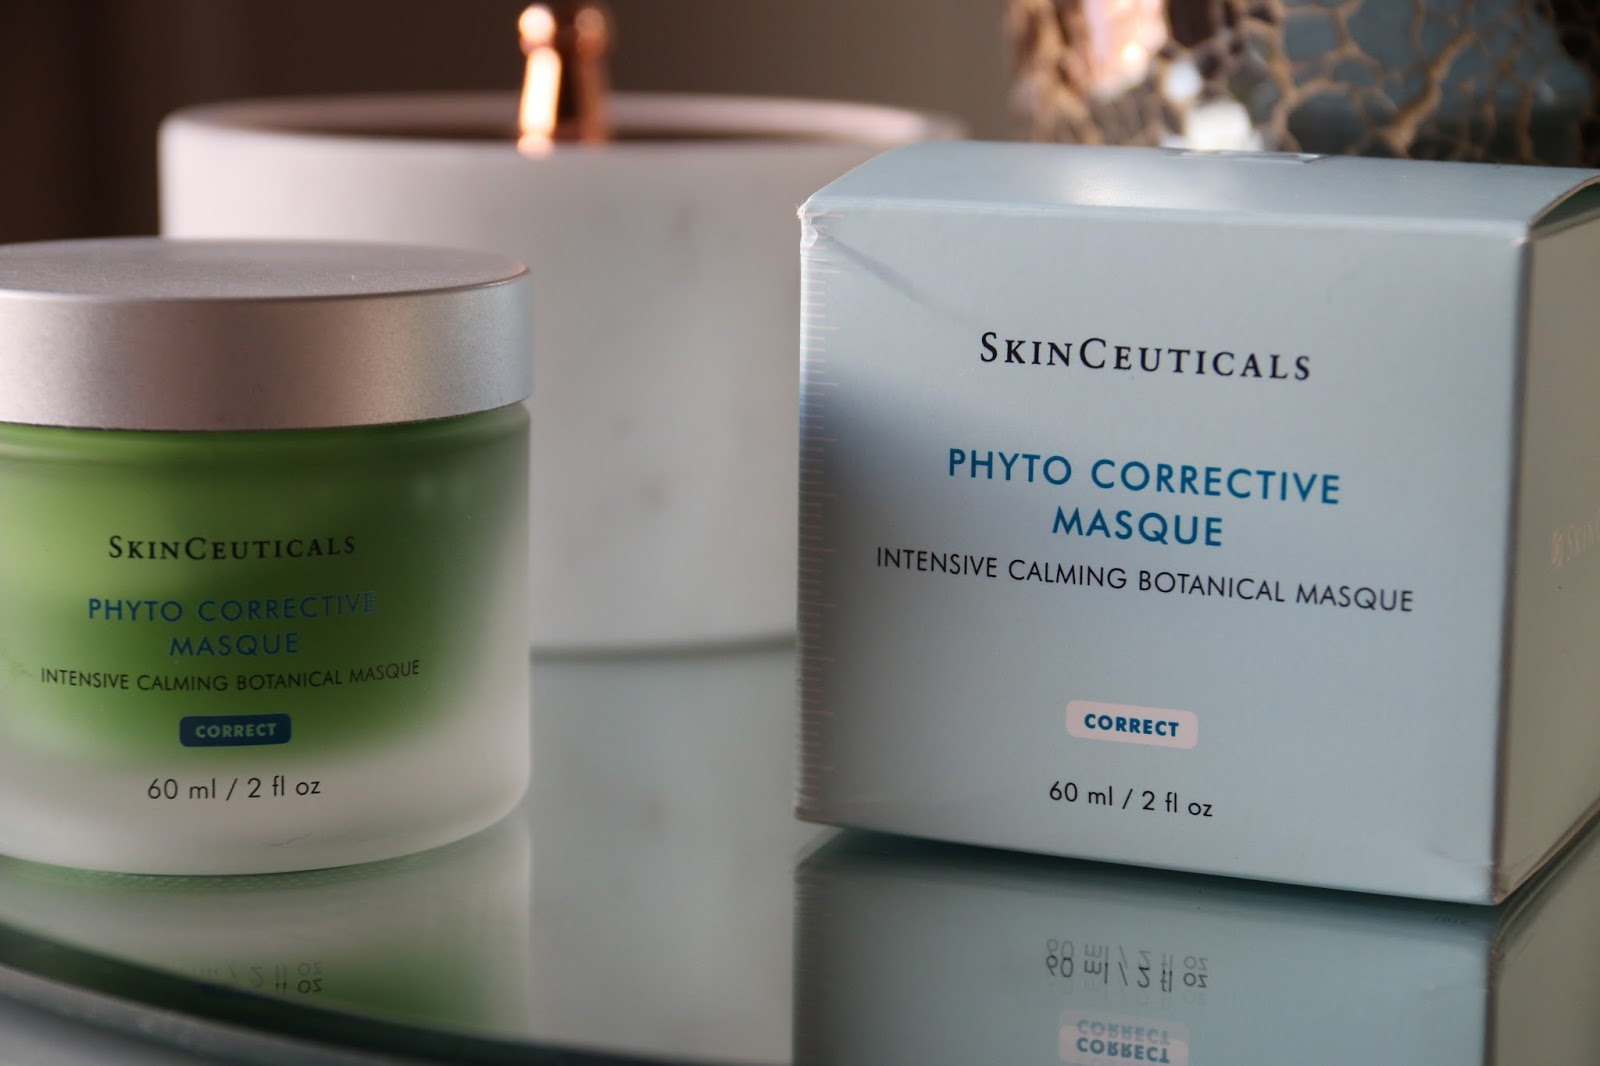 skinceuticals phyto corrective masque reviews